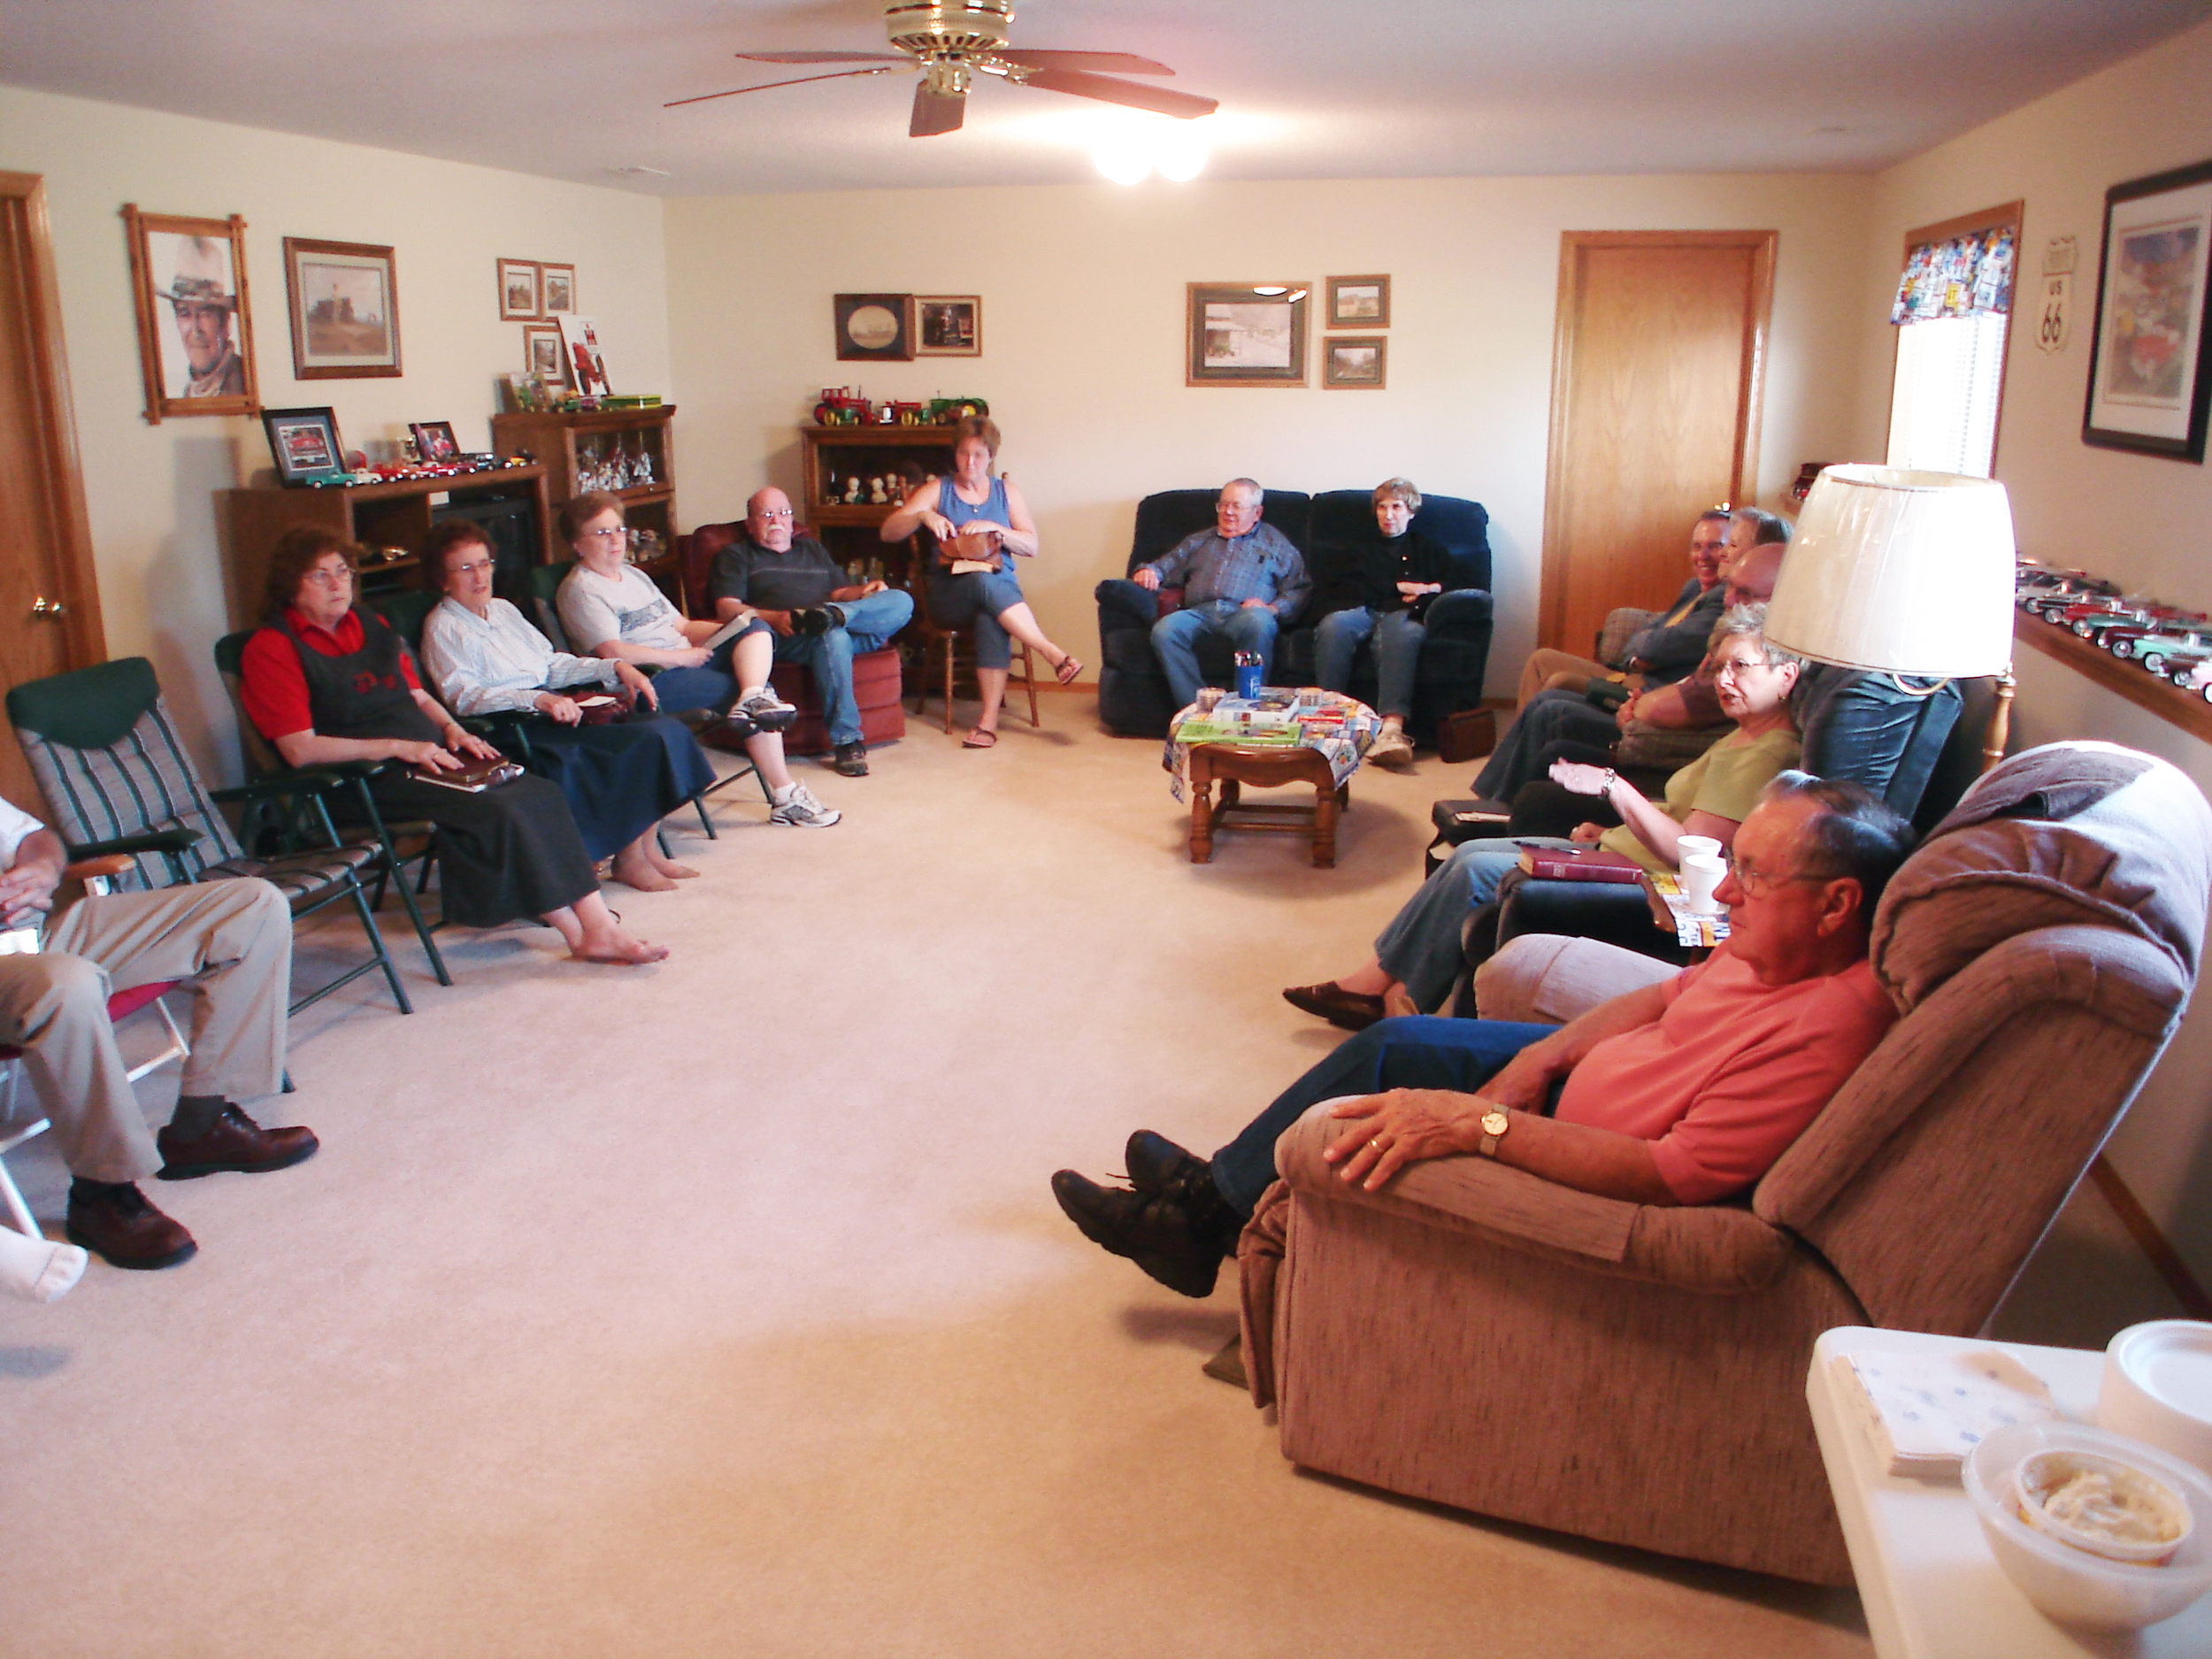 One of three mid-week services held in the homes of Wayne & Bertha Burrows in Bel Aire (pictured here), Larry & Wanda Decker in Clearwater,and Gary and Marlynn Dinsmore in Derby.